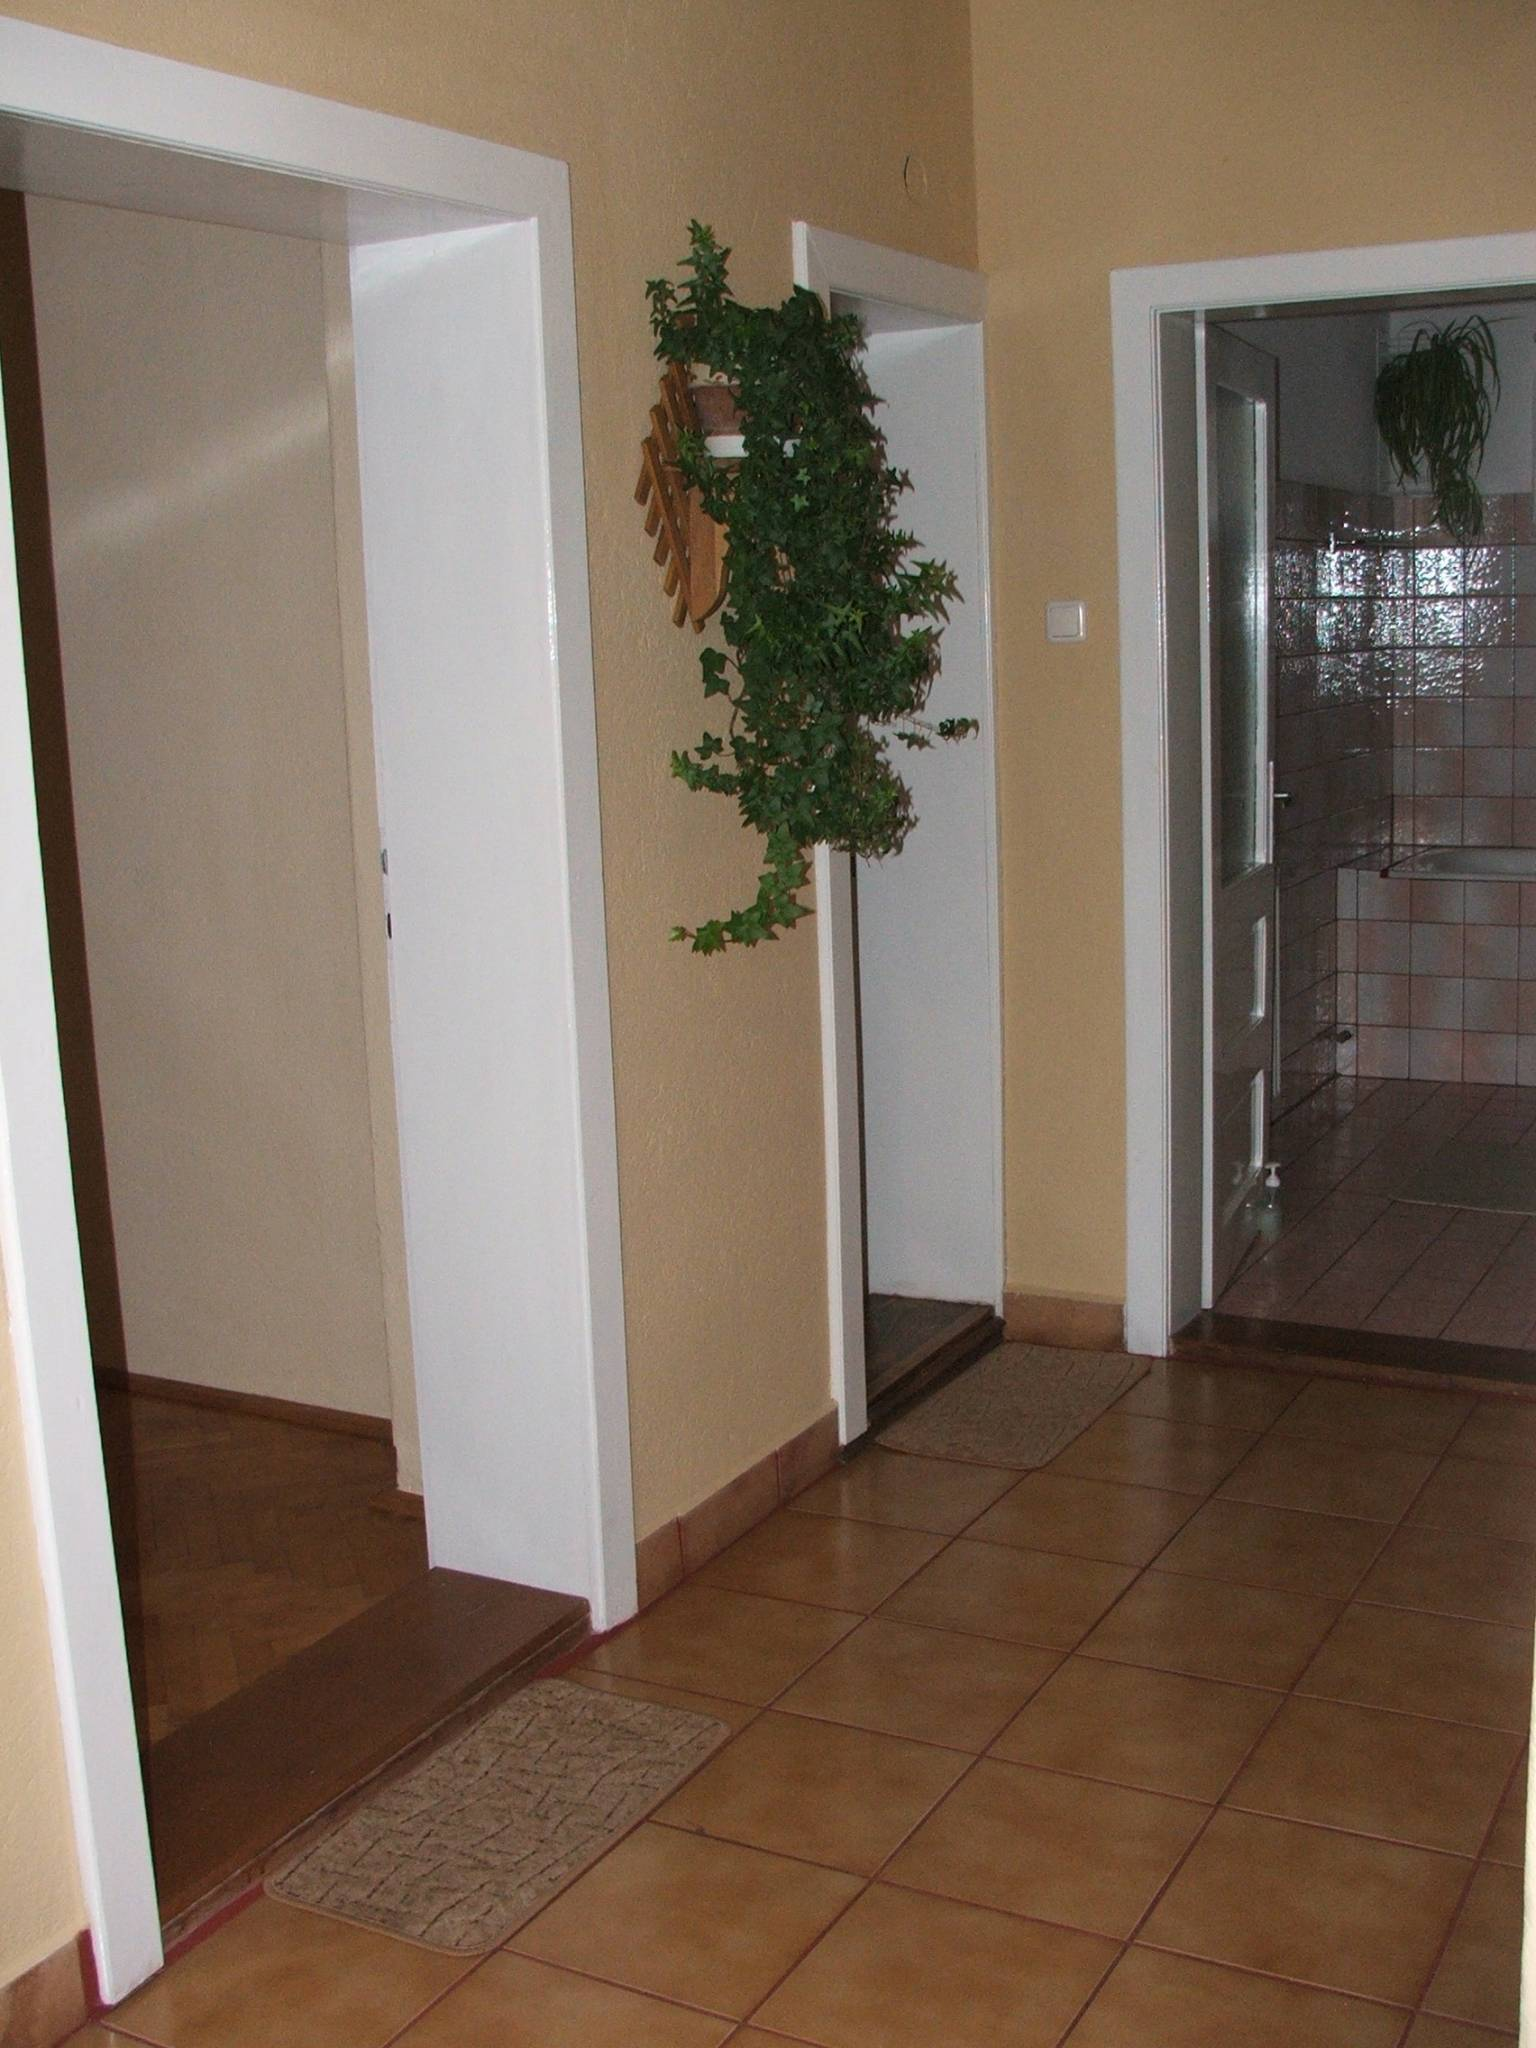 Panorma-Apartman Erdly Felsboldogfalva - apartman I